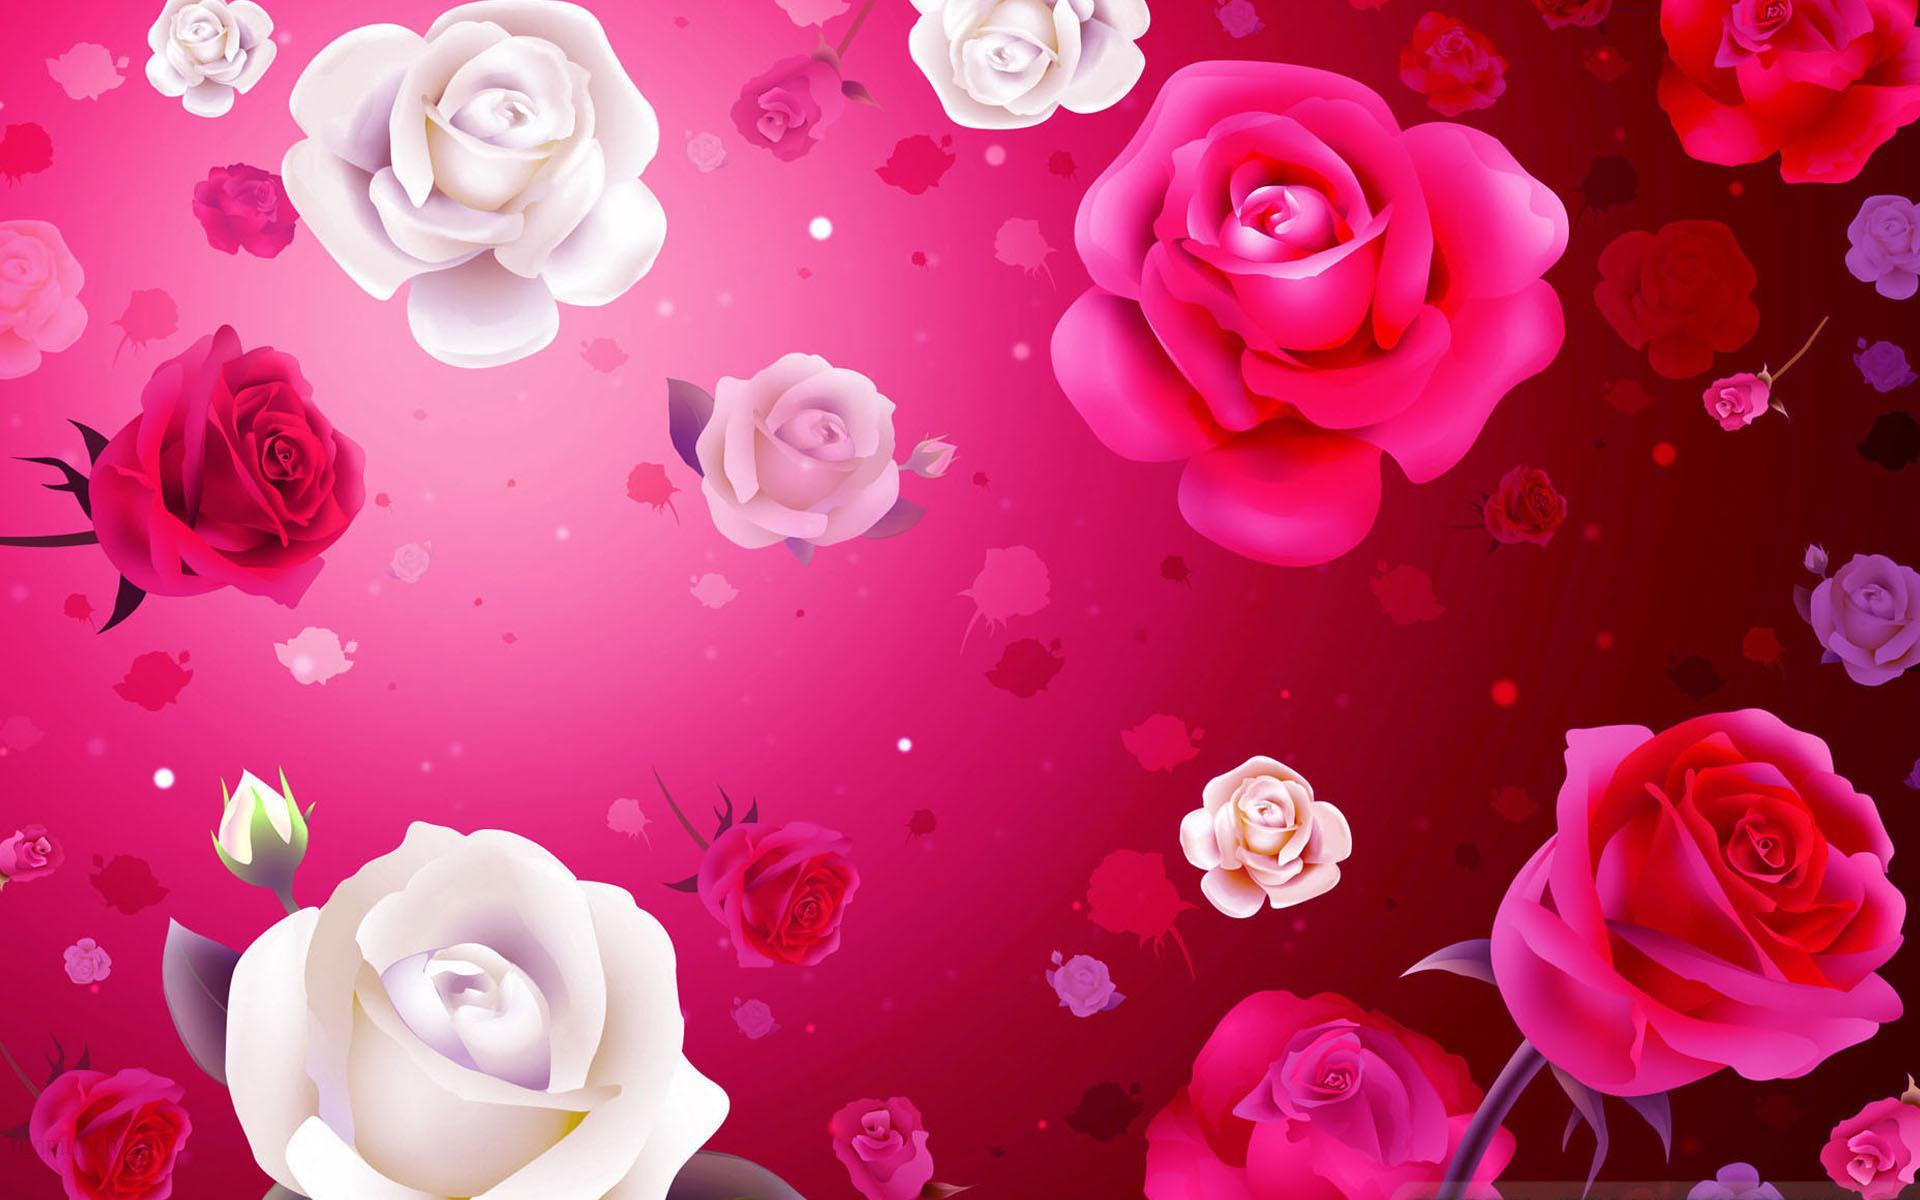 Valentines Day 2014 Desktop Background   Wallpaper High Definition 1920x1200